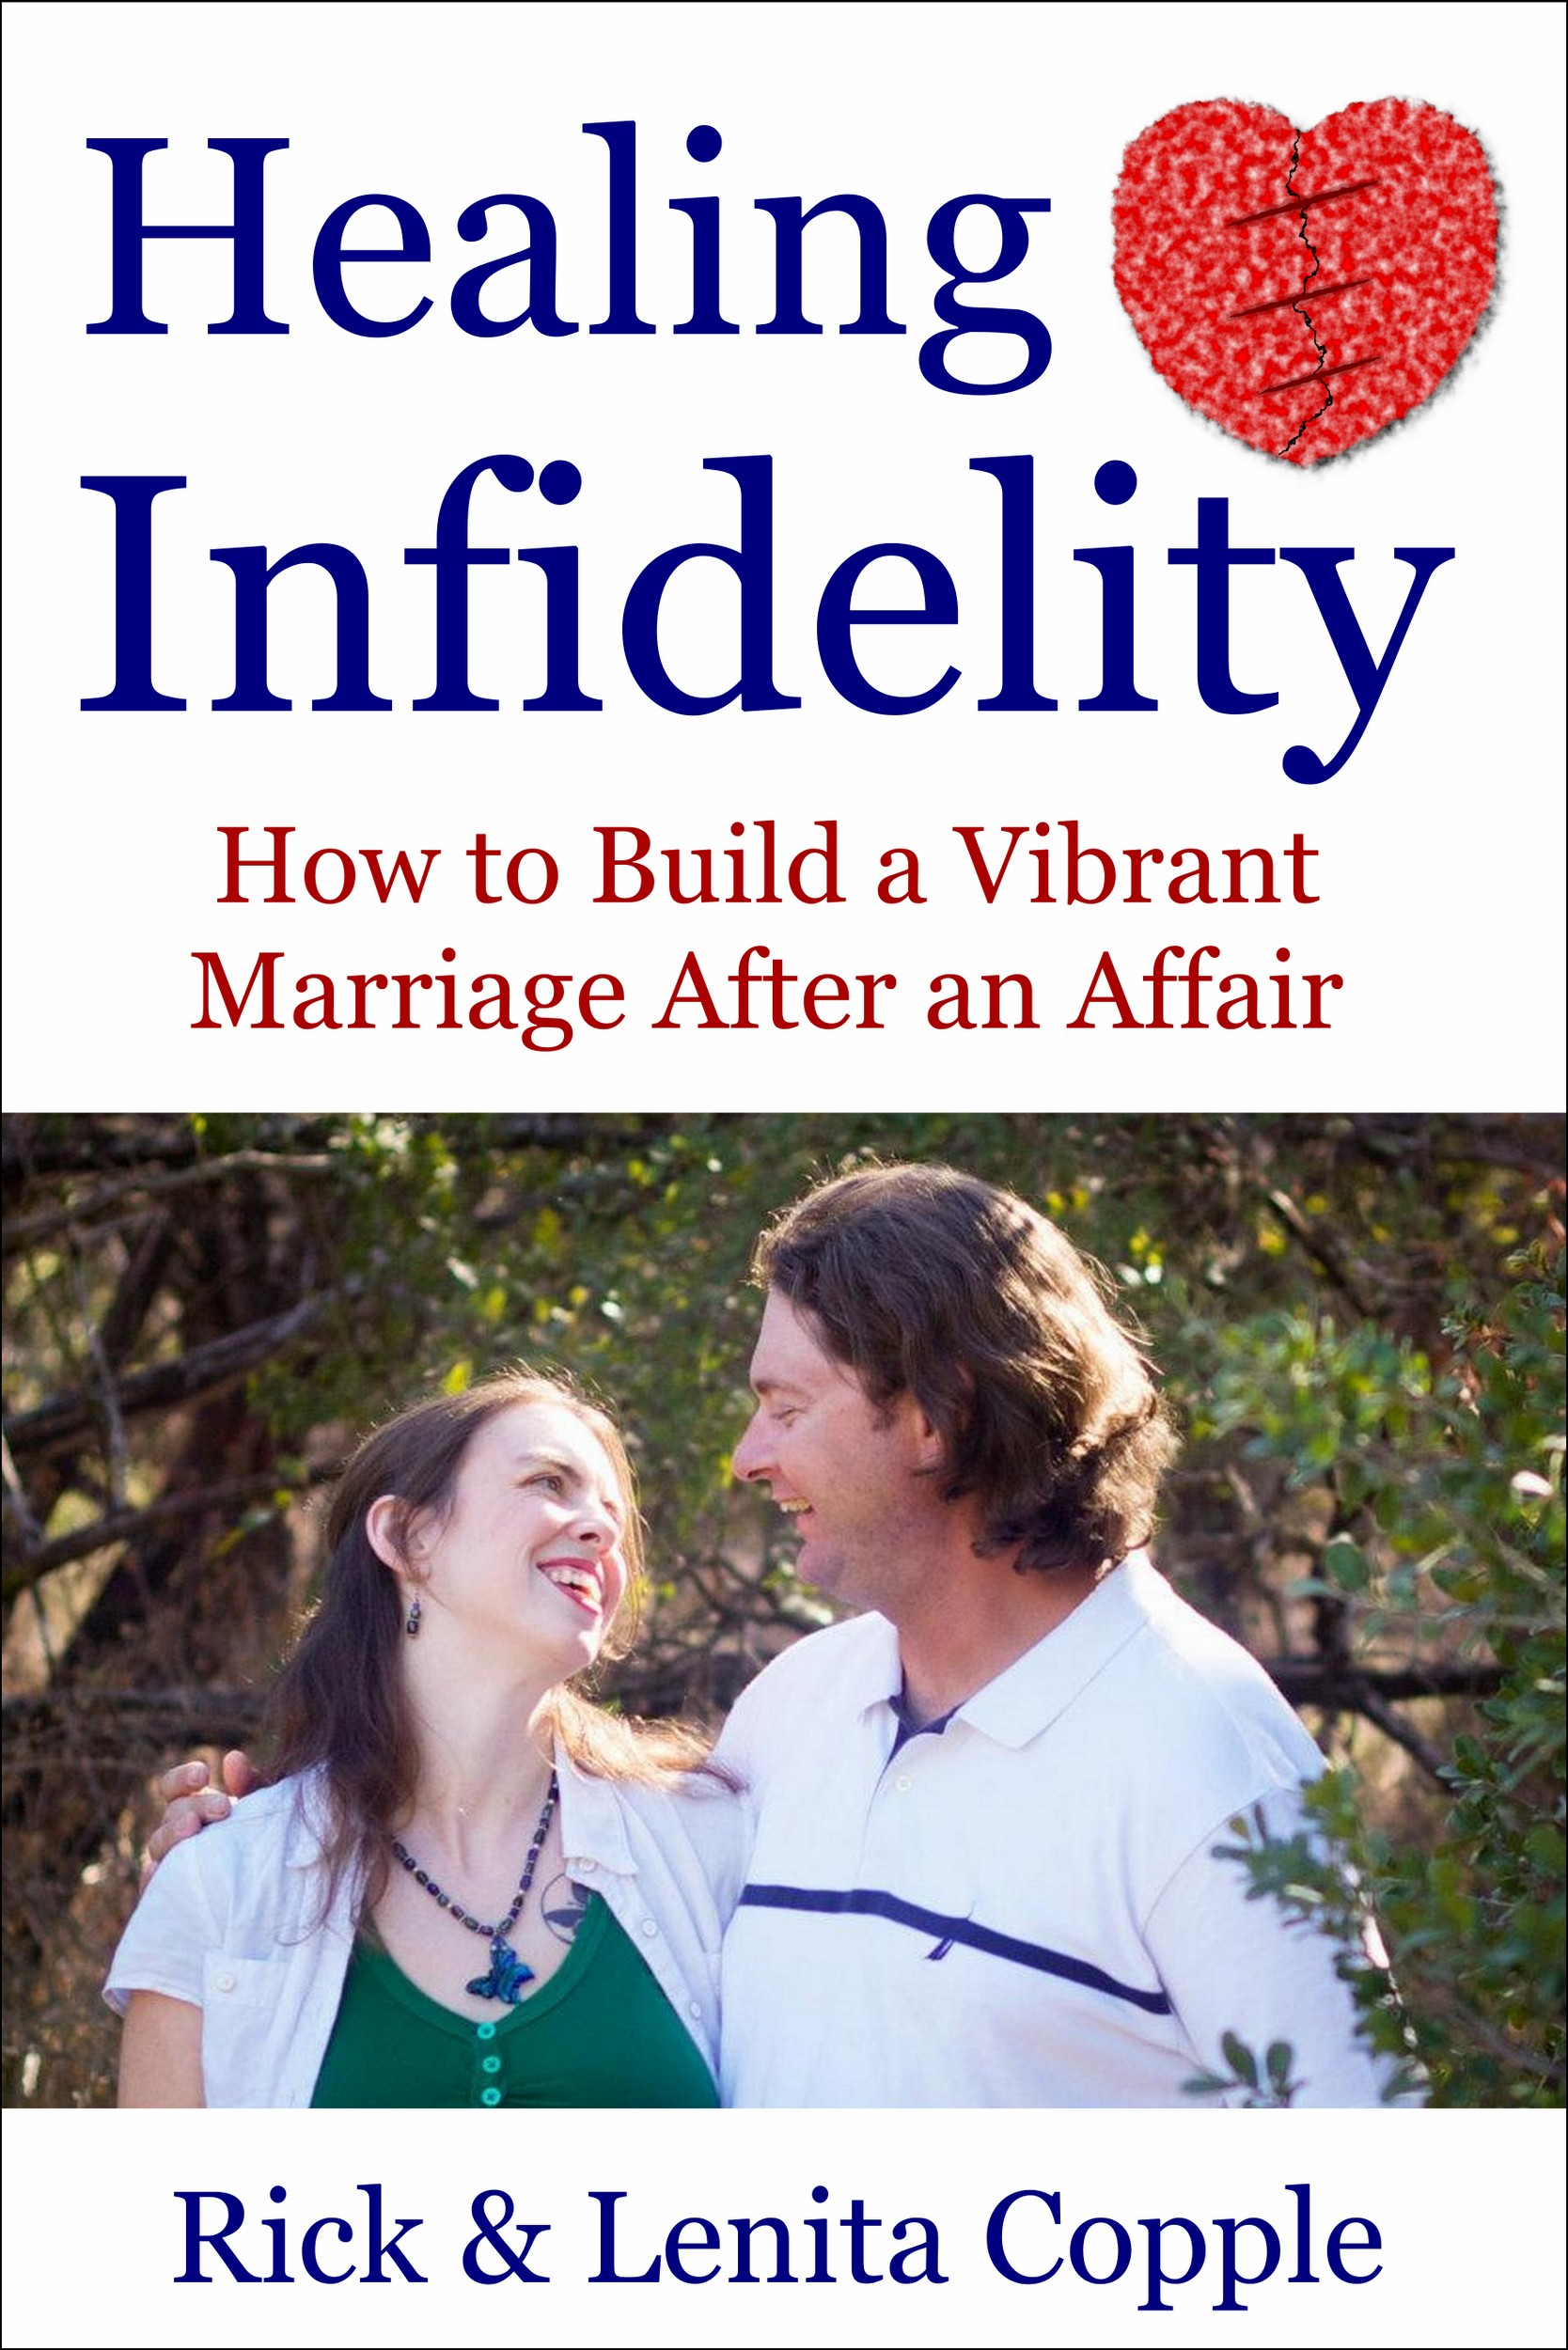 the prevalence of infidelity in marriage essay